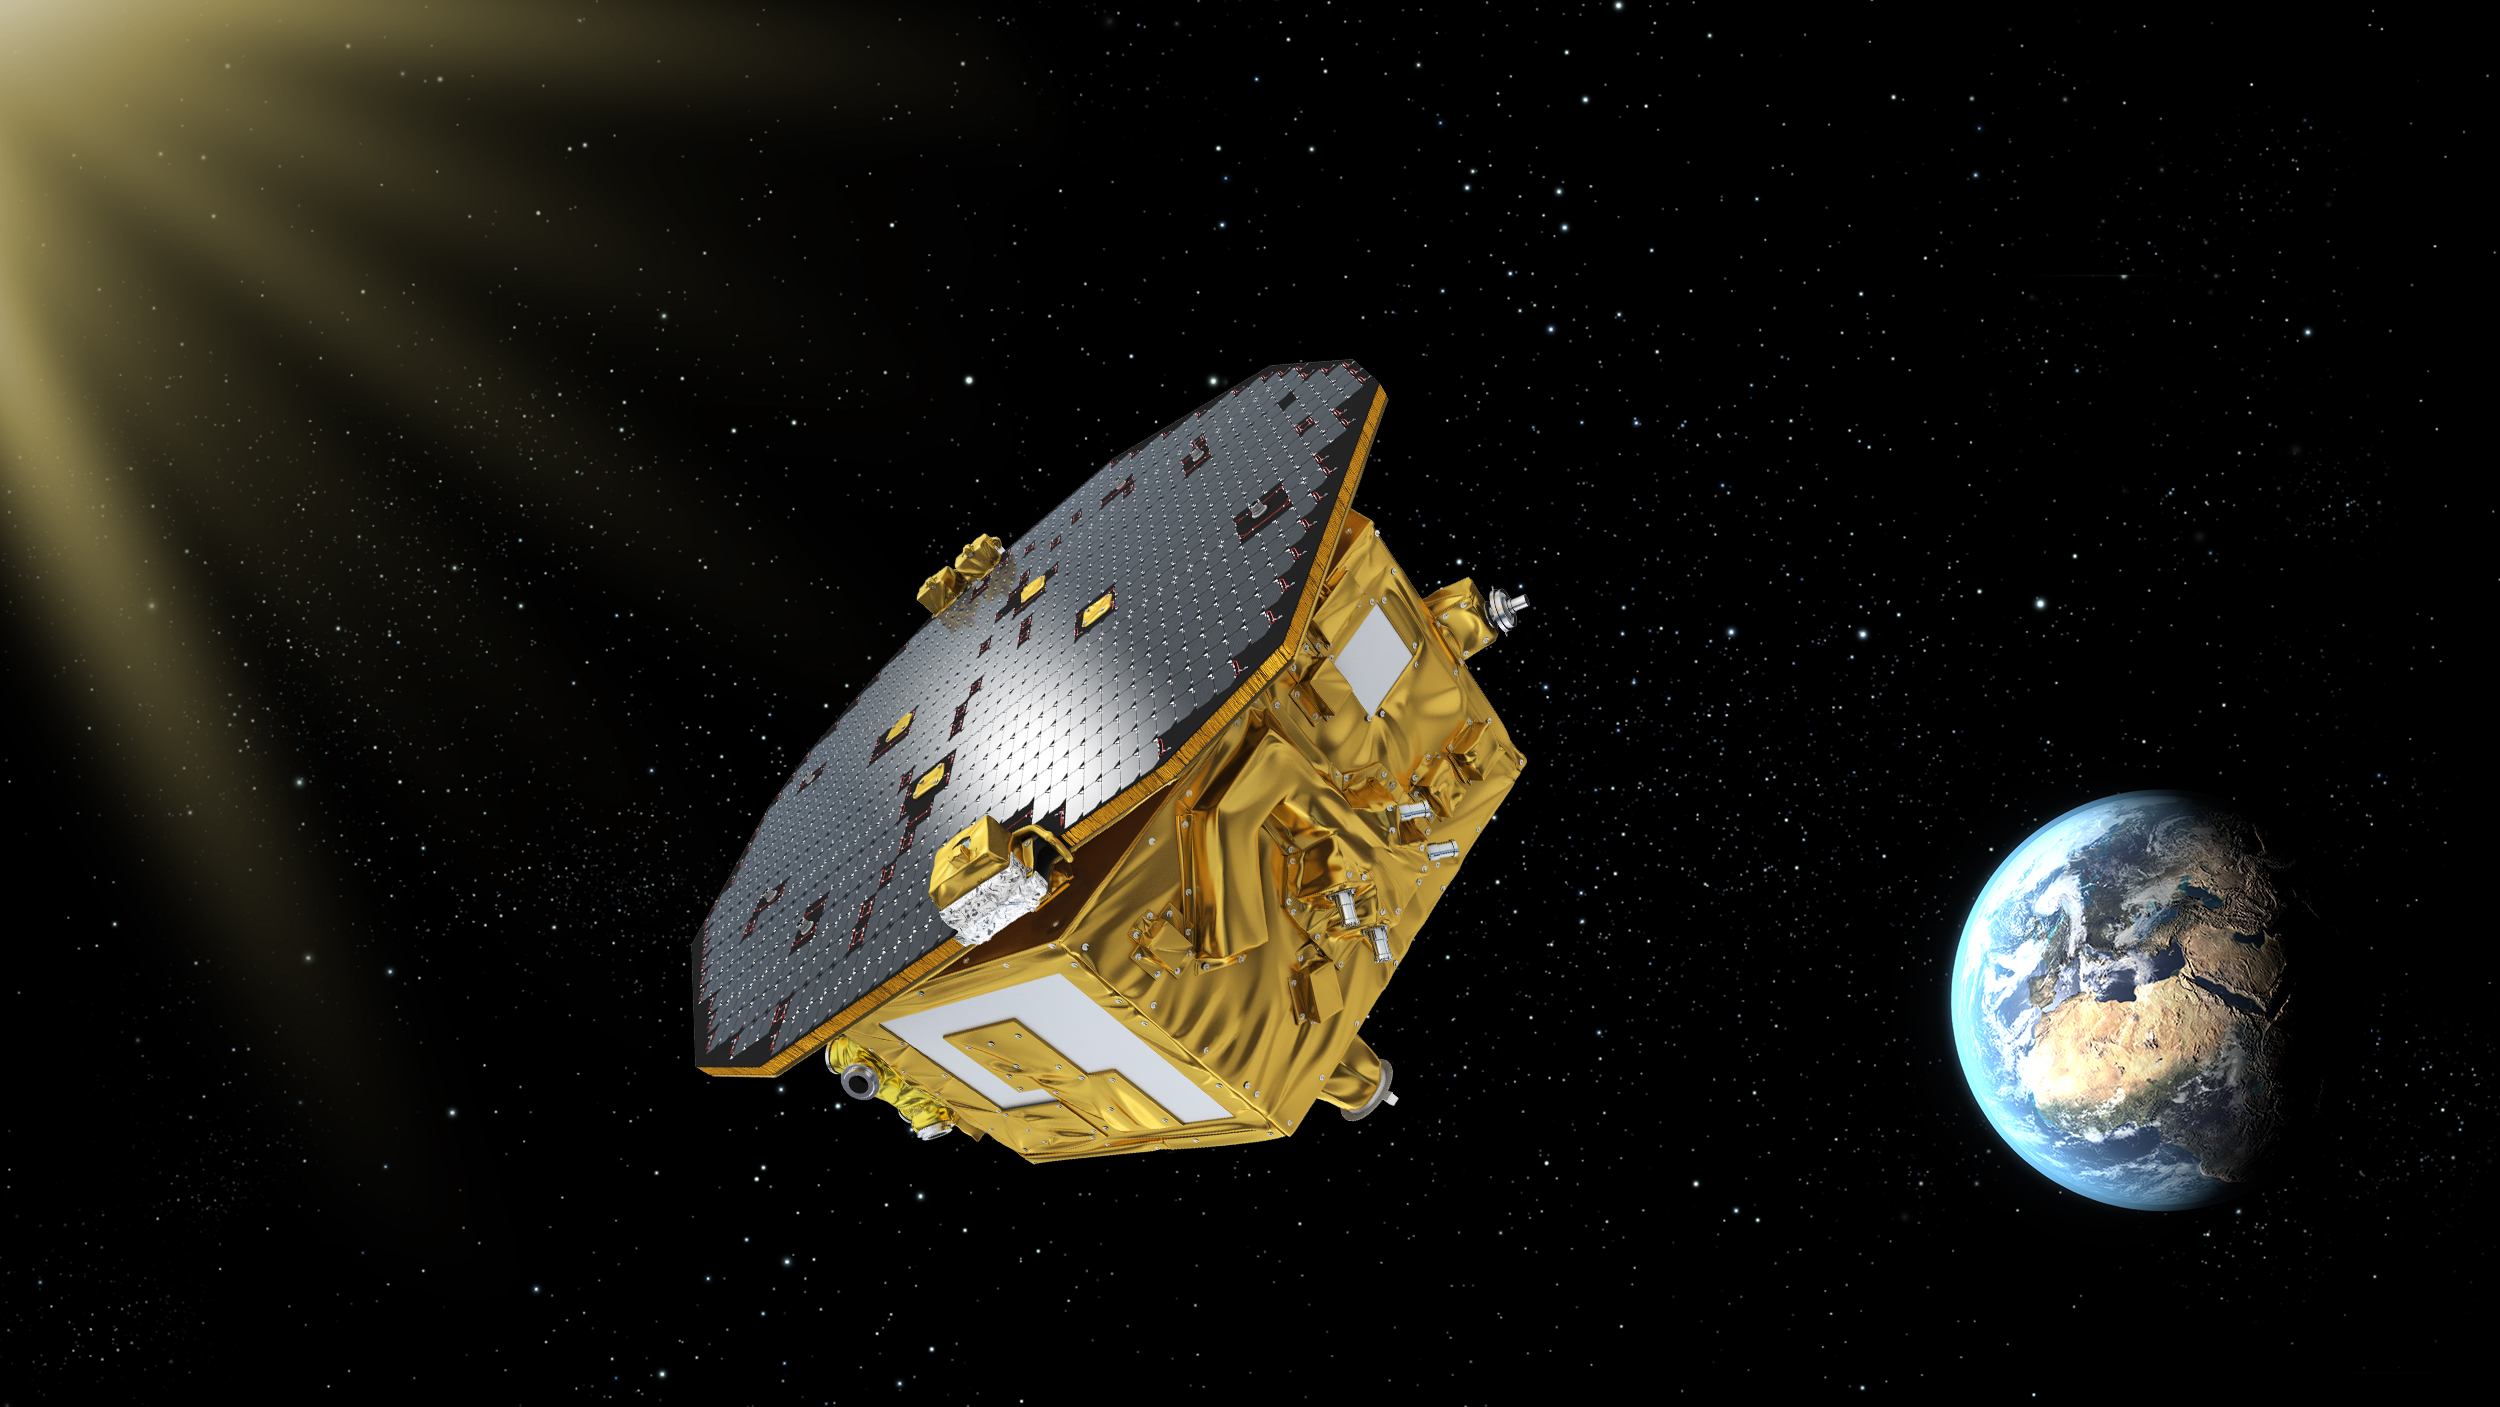 Pathfinder Mission Eases Our Way to Exploring the Gravitational Universe